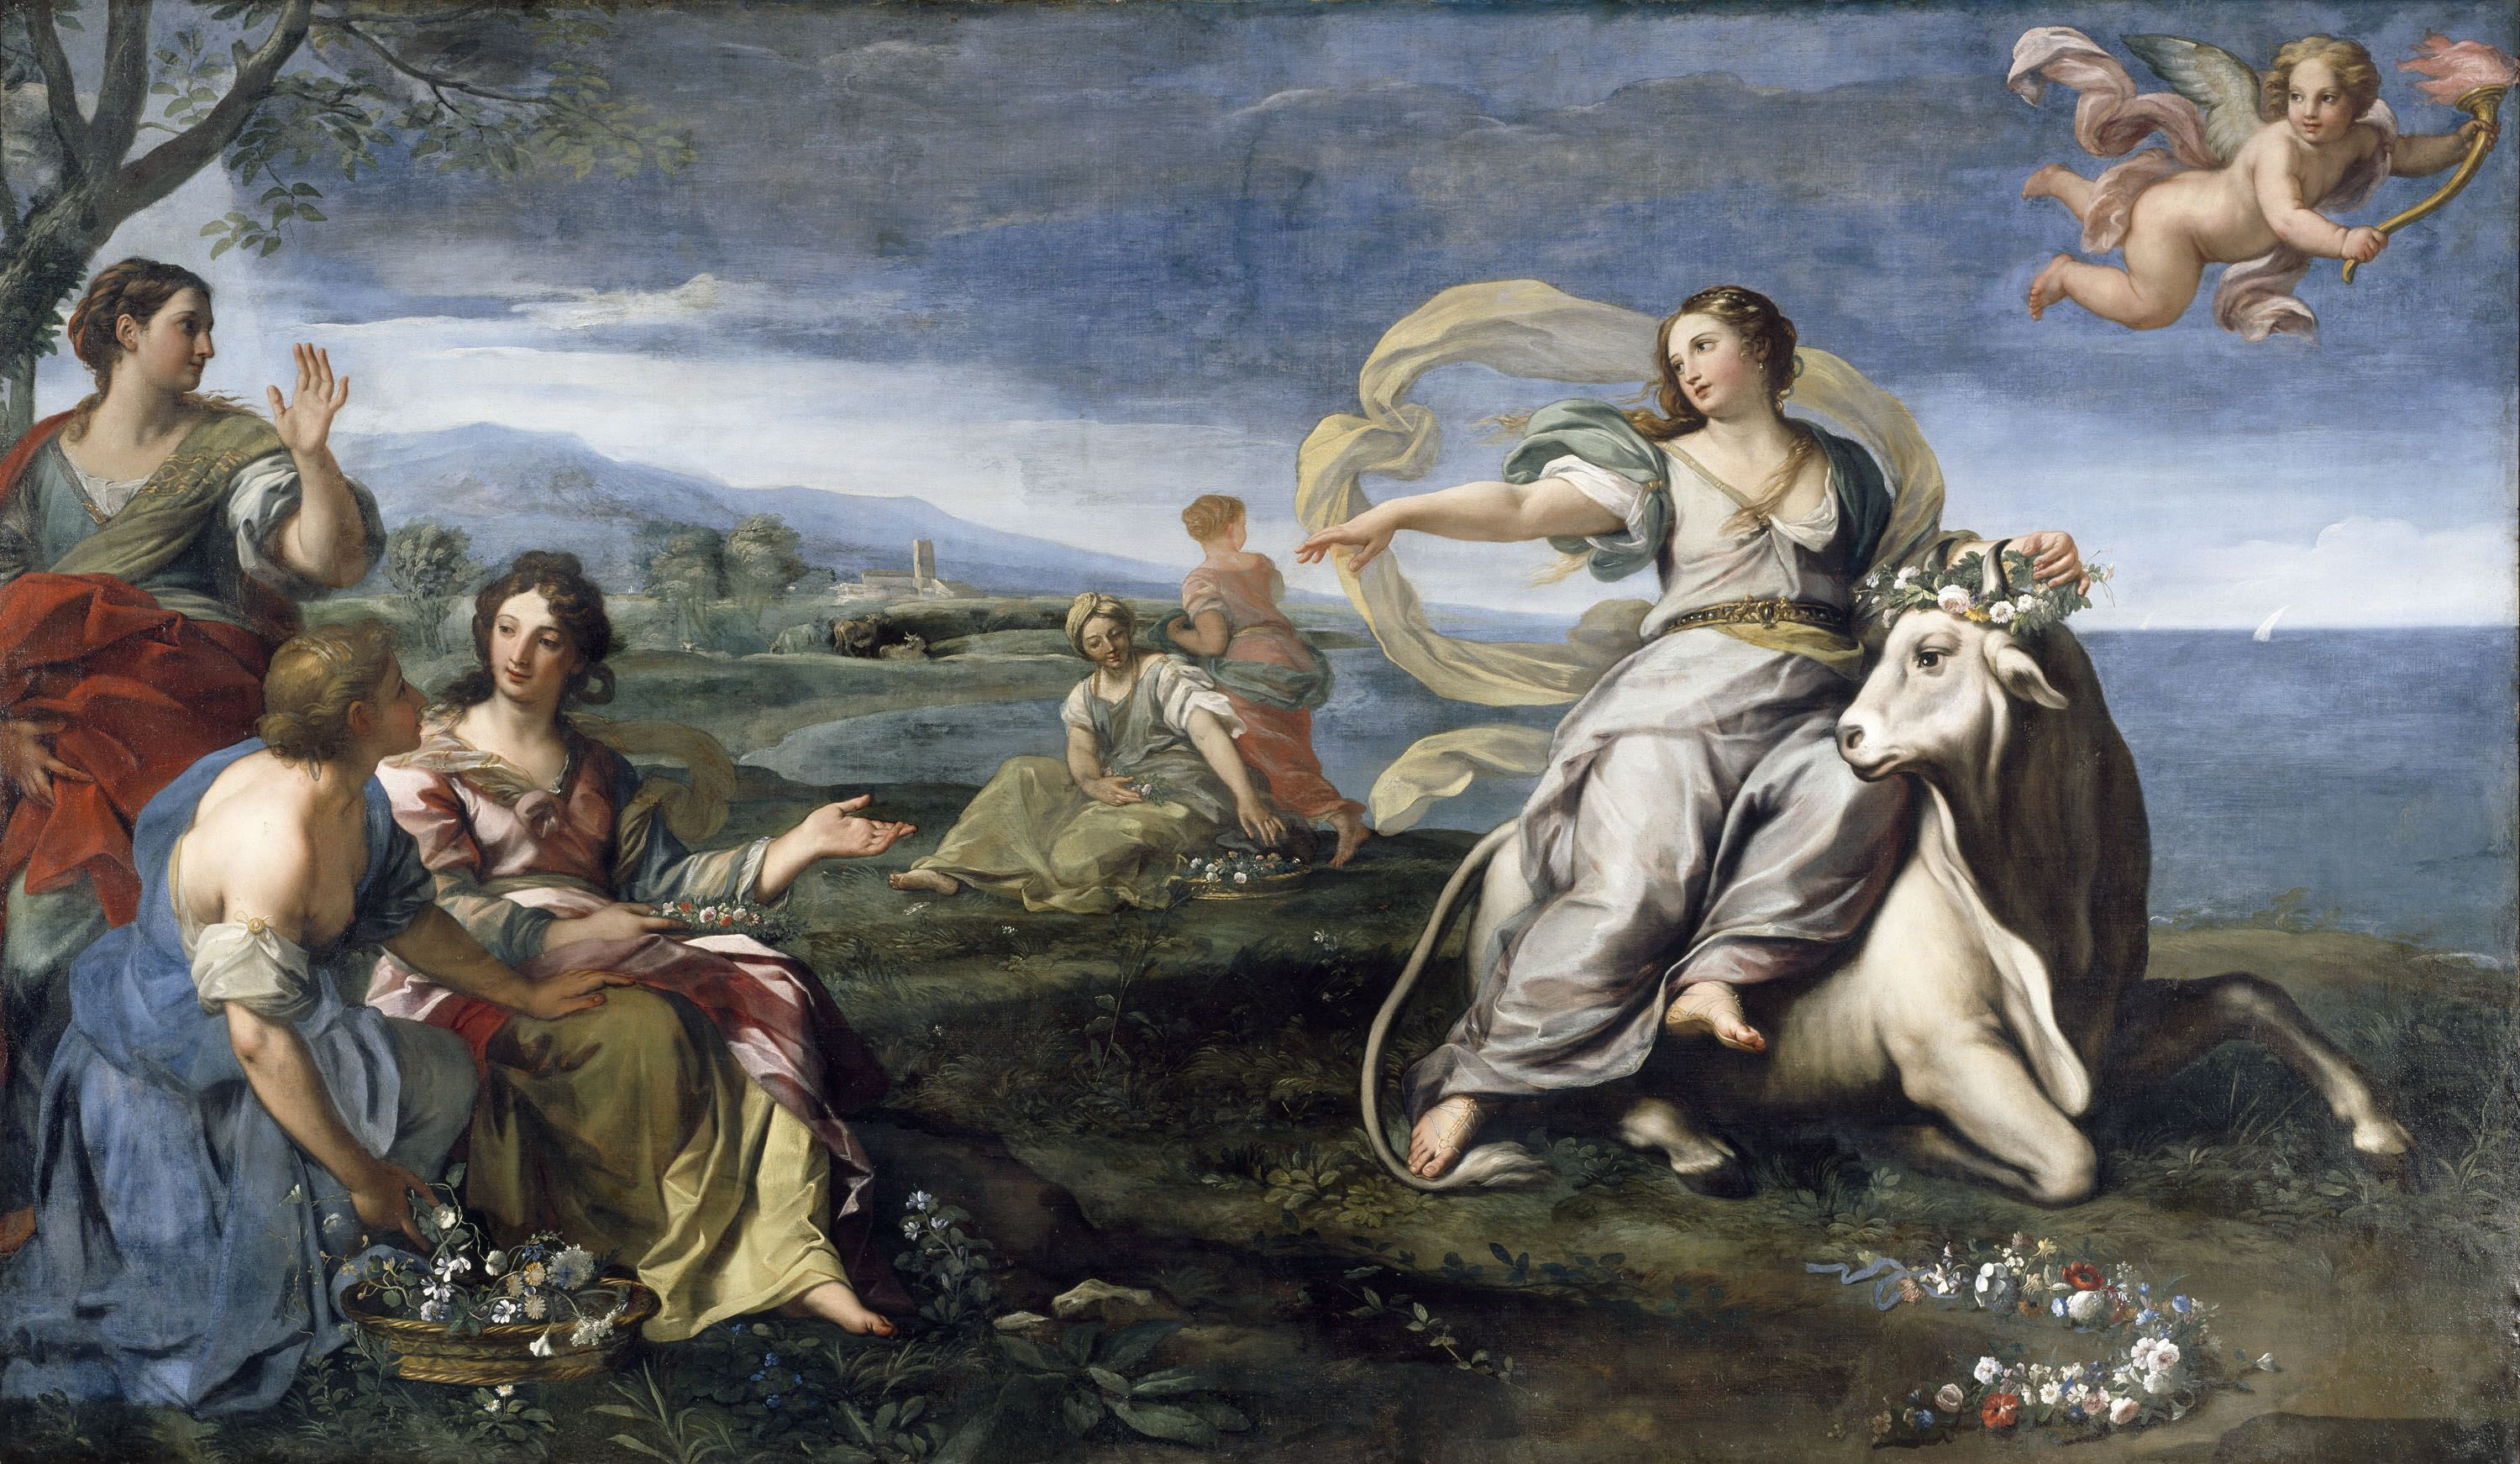 filecarlo maratta the rape of europa 16801685jpg